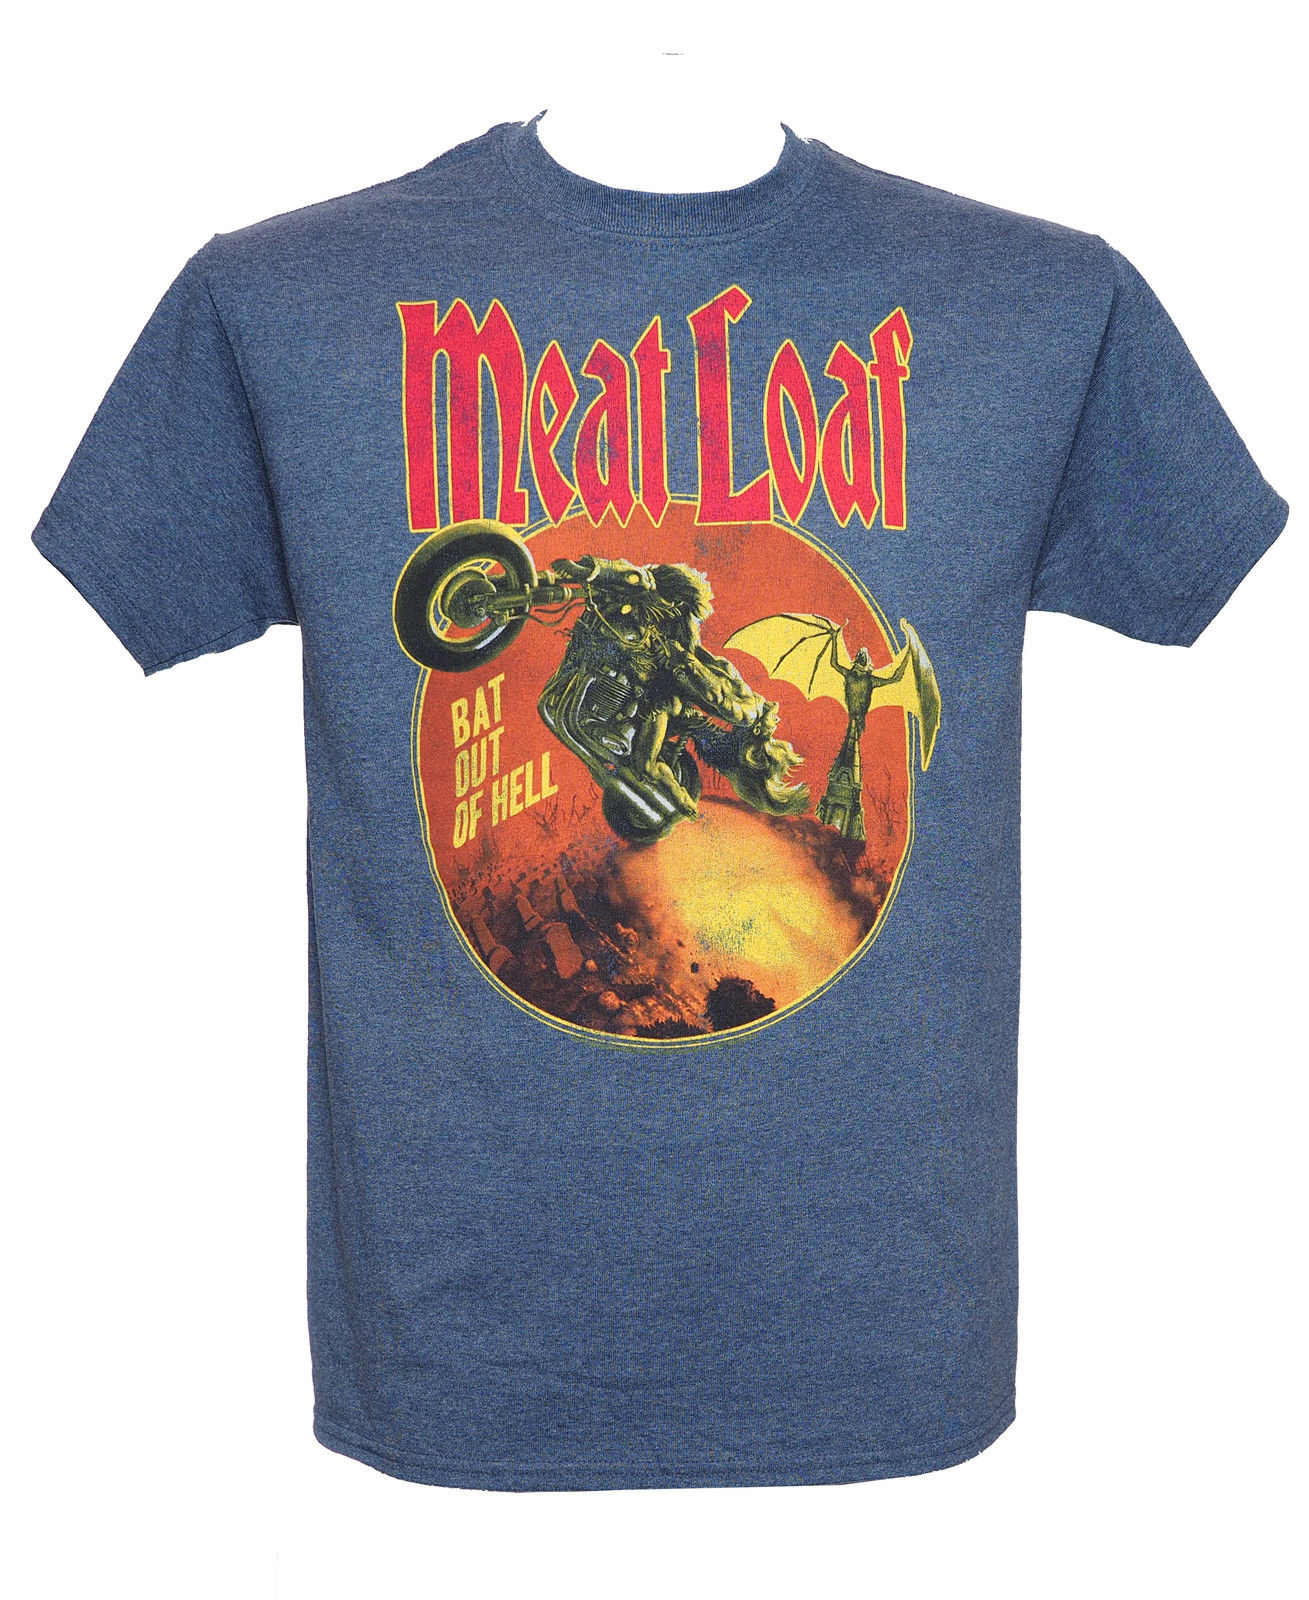 MEAT LOAF - BAT OUT OF HELL - Official T-shirt - Metal - New S M L XLNew Arrival Male Tees Casual Boy T-Shirts Tops Discounts image